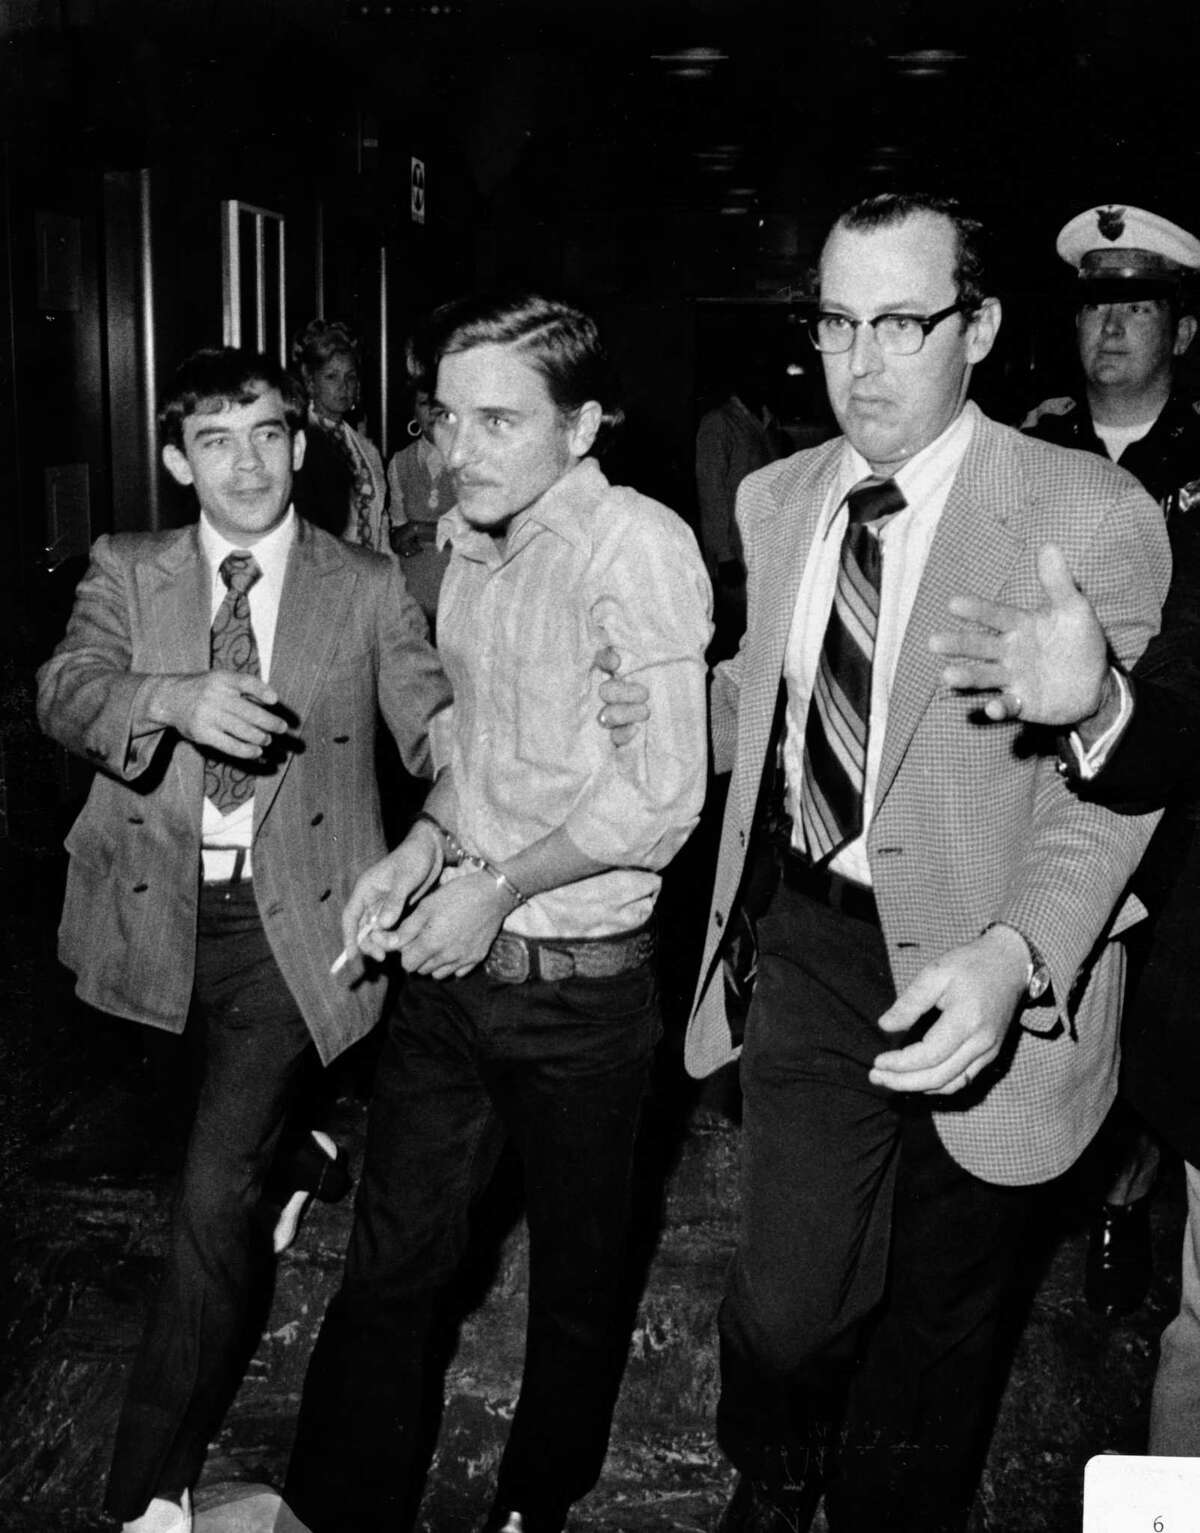 Aug. 13, 1973: A handcuffed Elmer Wayne Henley is escorted by police officers into a courtroom to face murder charges after he killed Dean Arnold Corll. Corll, who was known as The Candy Man, was a serial killer believed to have killed 28 teenage Houston boys, most of whom were lured by then-17-year-old Henley and a third teenage accomplice, David Owen Brooks. The murders came to light when Henley shot Corll Aug. 8, 1973. Henley is currently serving a 594-year sentence in the Texas State Penitentiary in Huntsville.